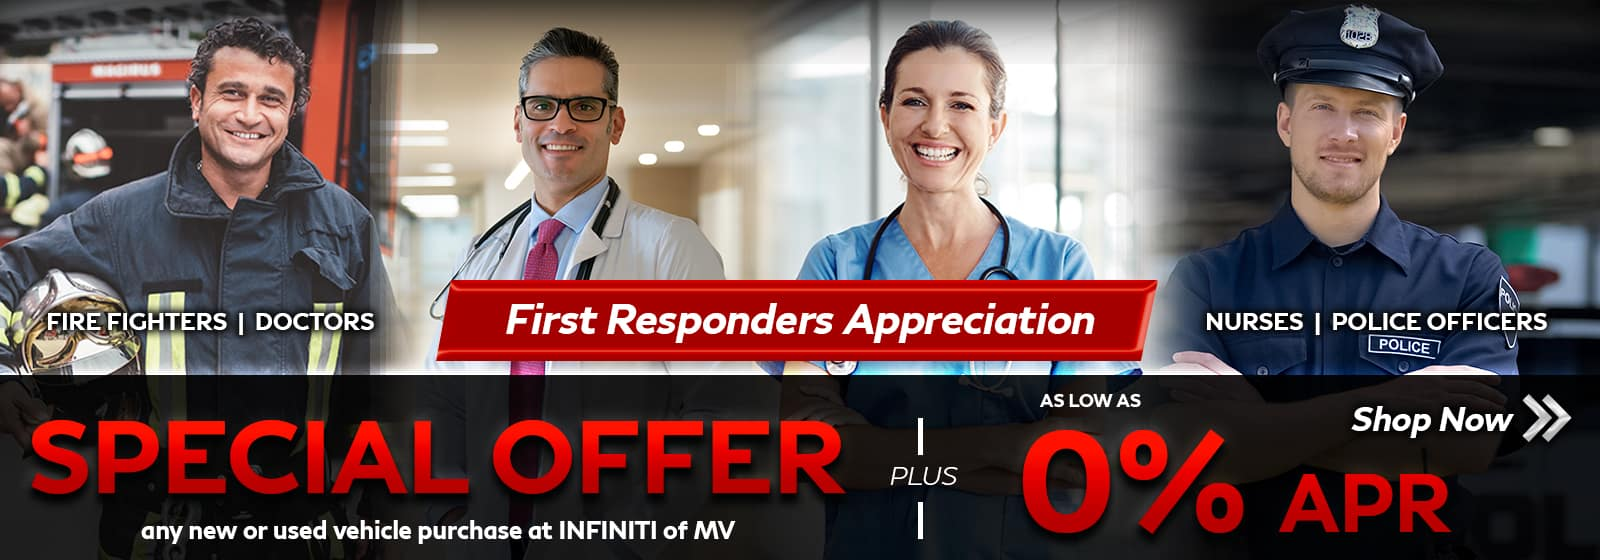 INFINITI of Mission Viejo First Responders Discount